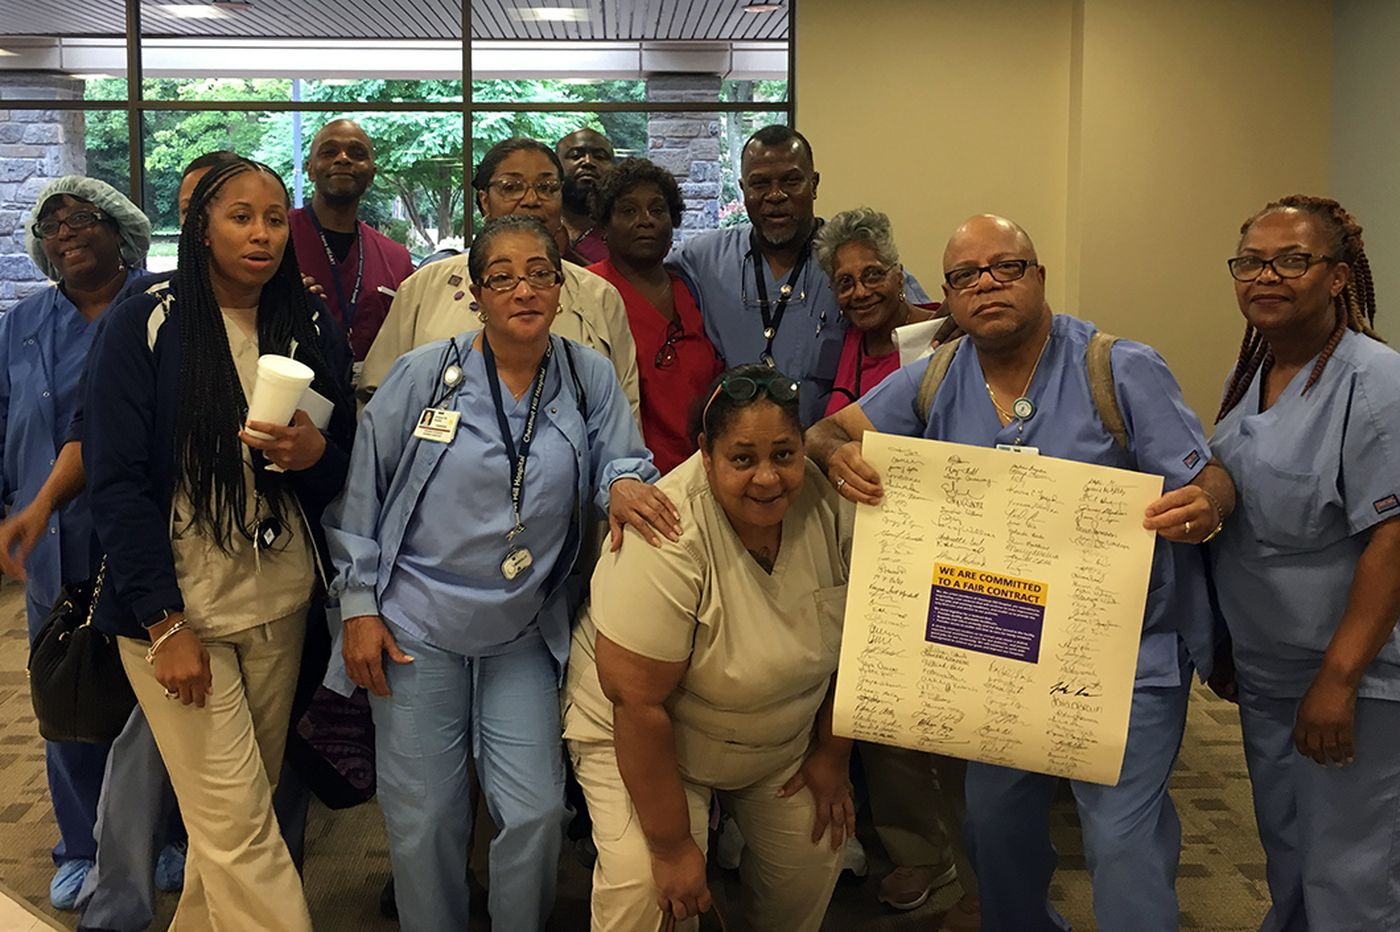 With new contract, Chestnut Hill Hospital workers won't have to travel hours for health care